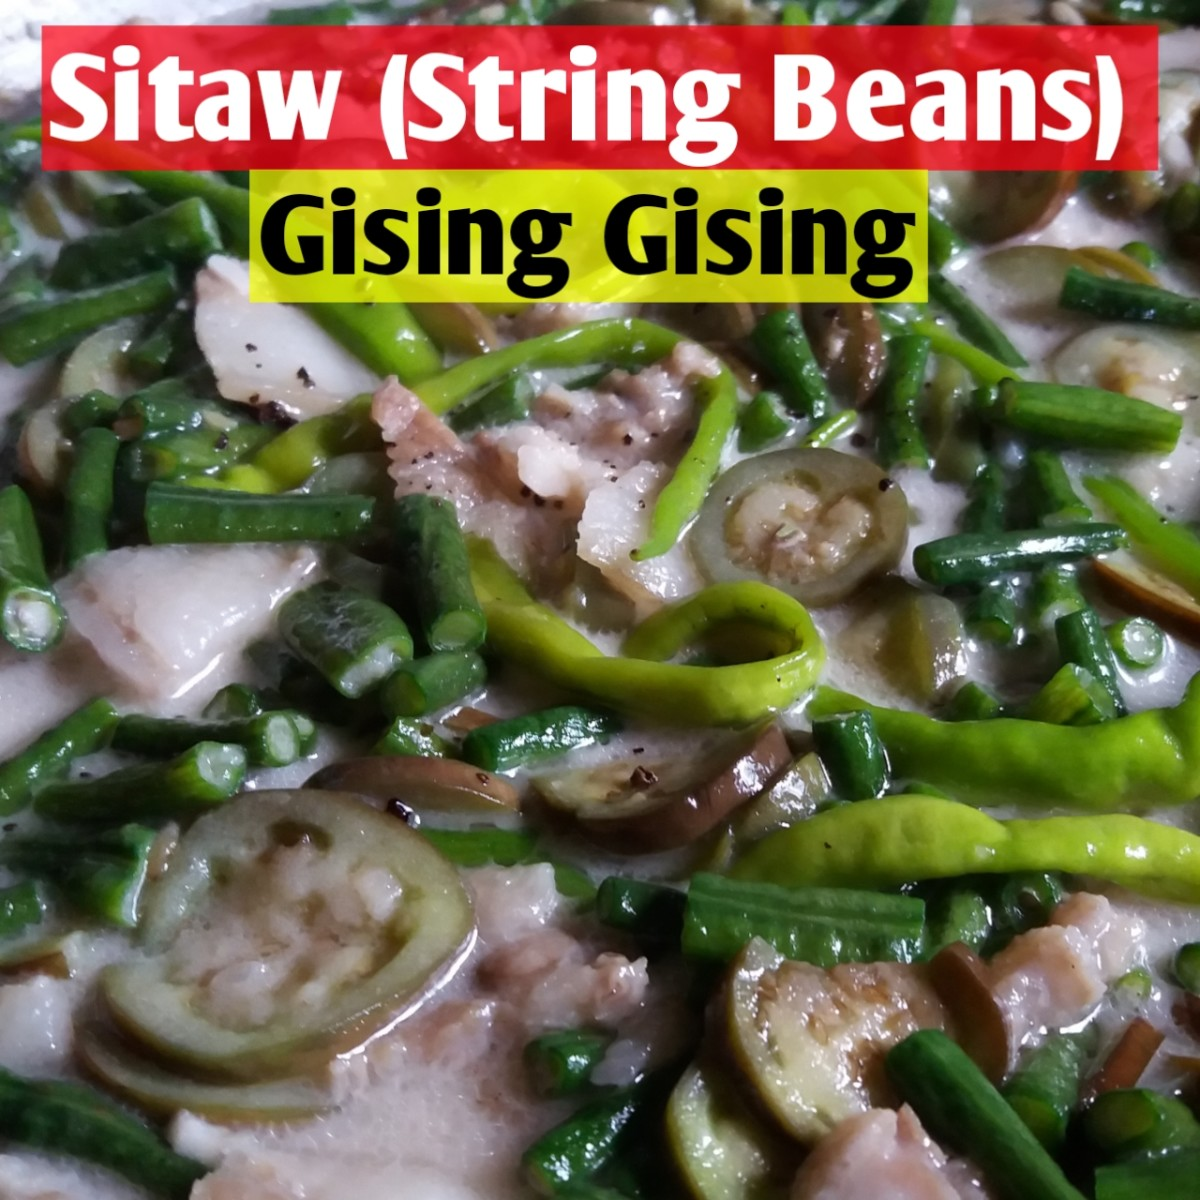 Gising gising with sitaw (string beans)